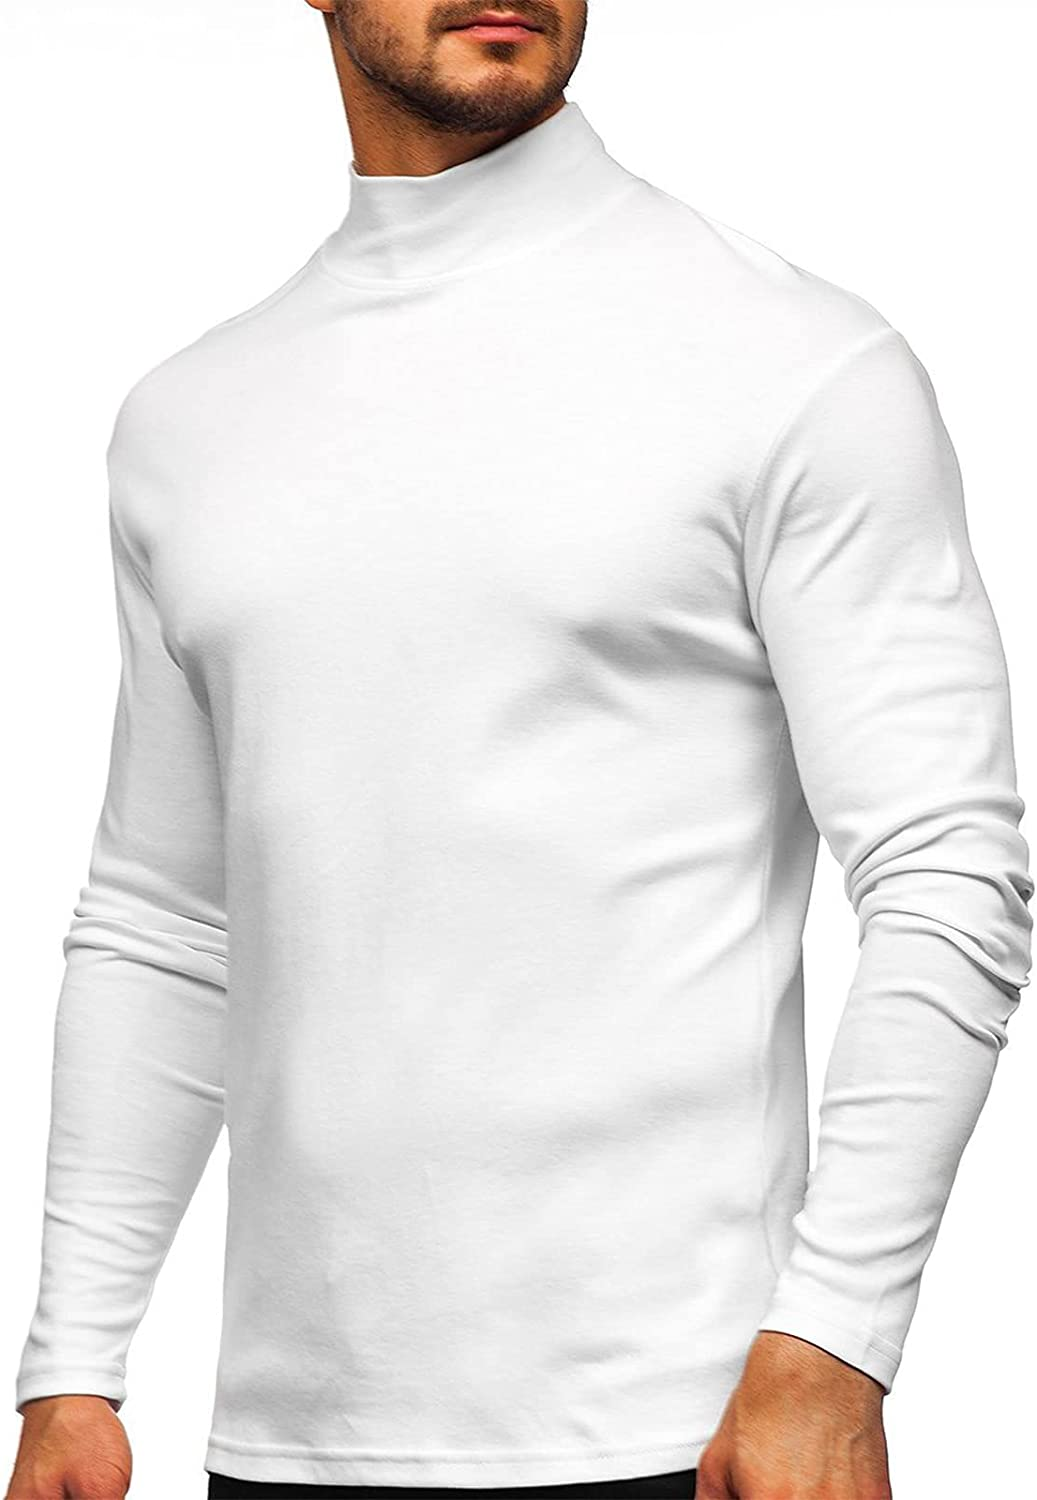 Veurshop Men's Casual Basic Tops Turtleneck Knitted Thermal Long Sleeve Pullover Solid Color T Shirts